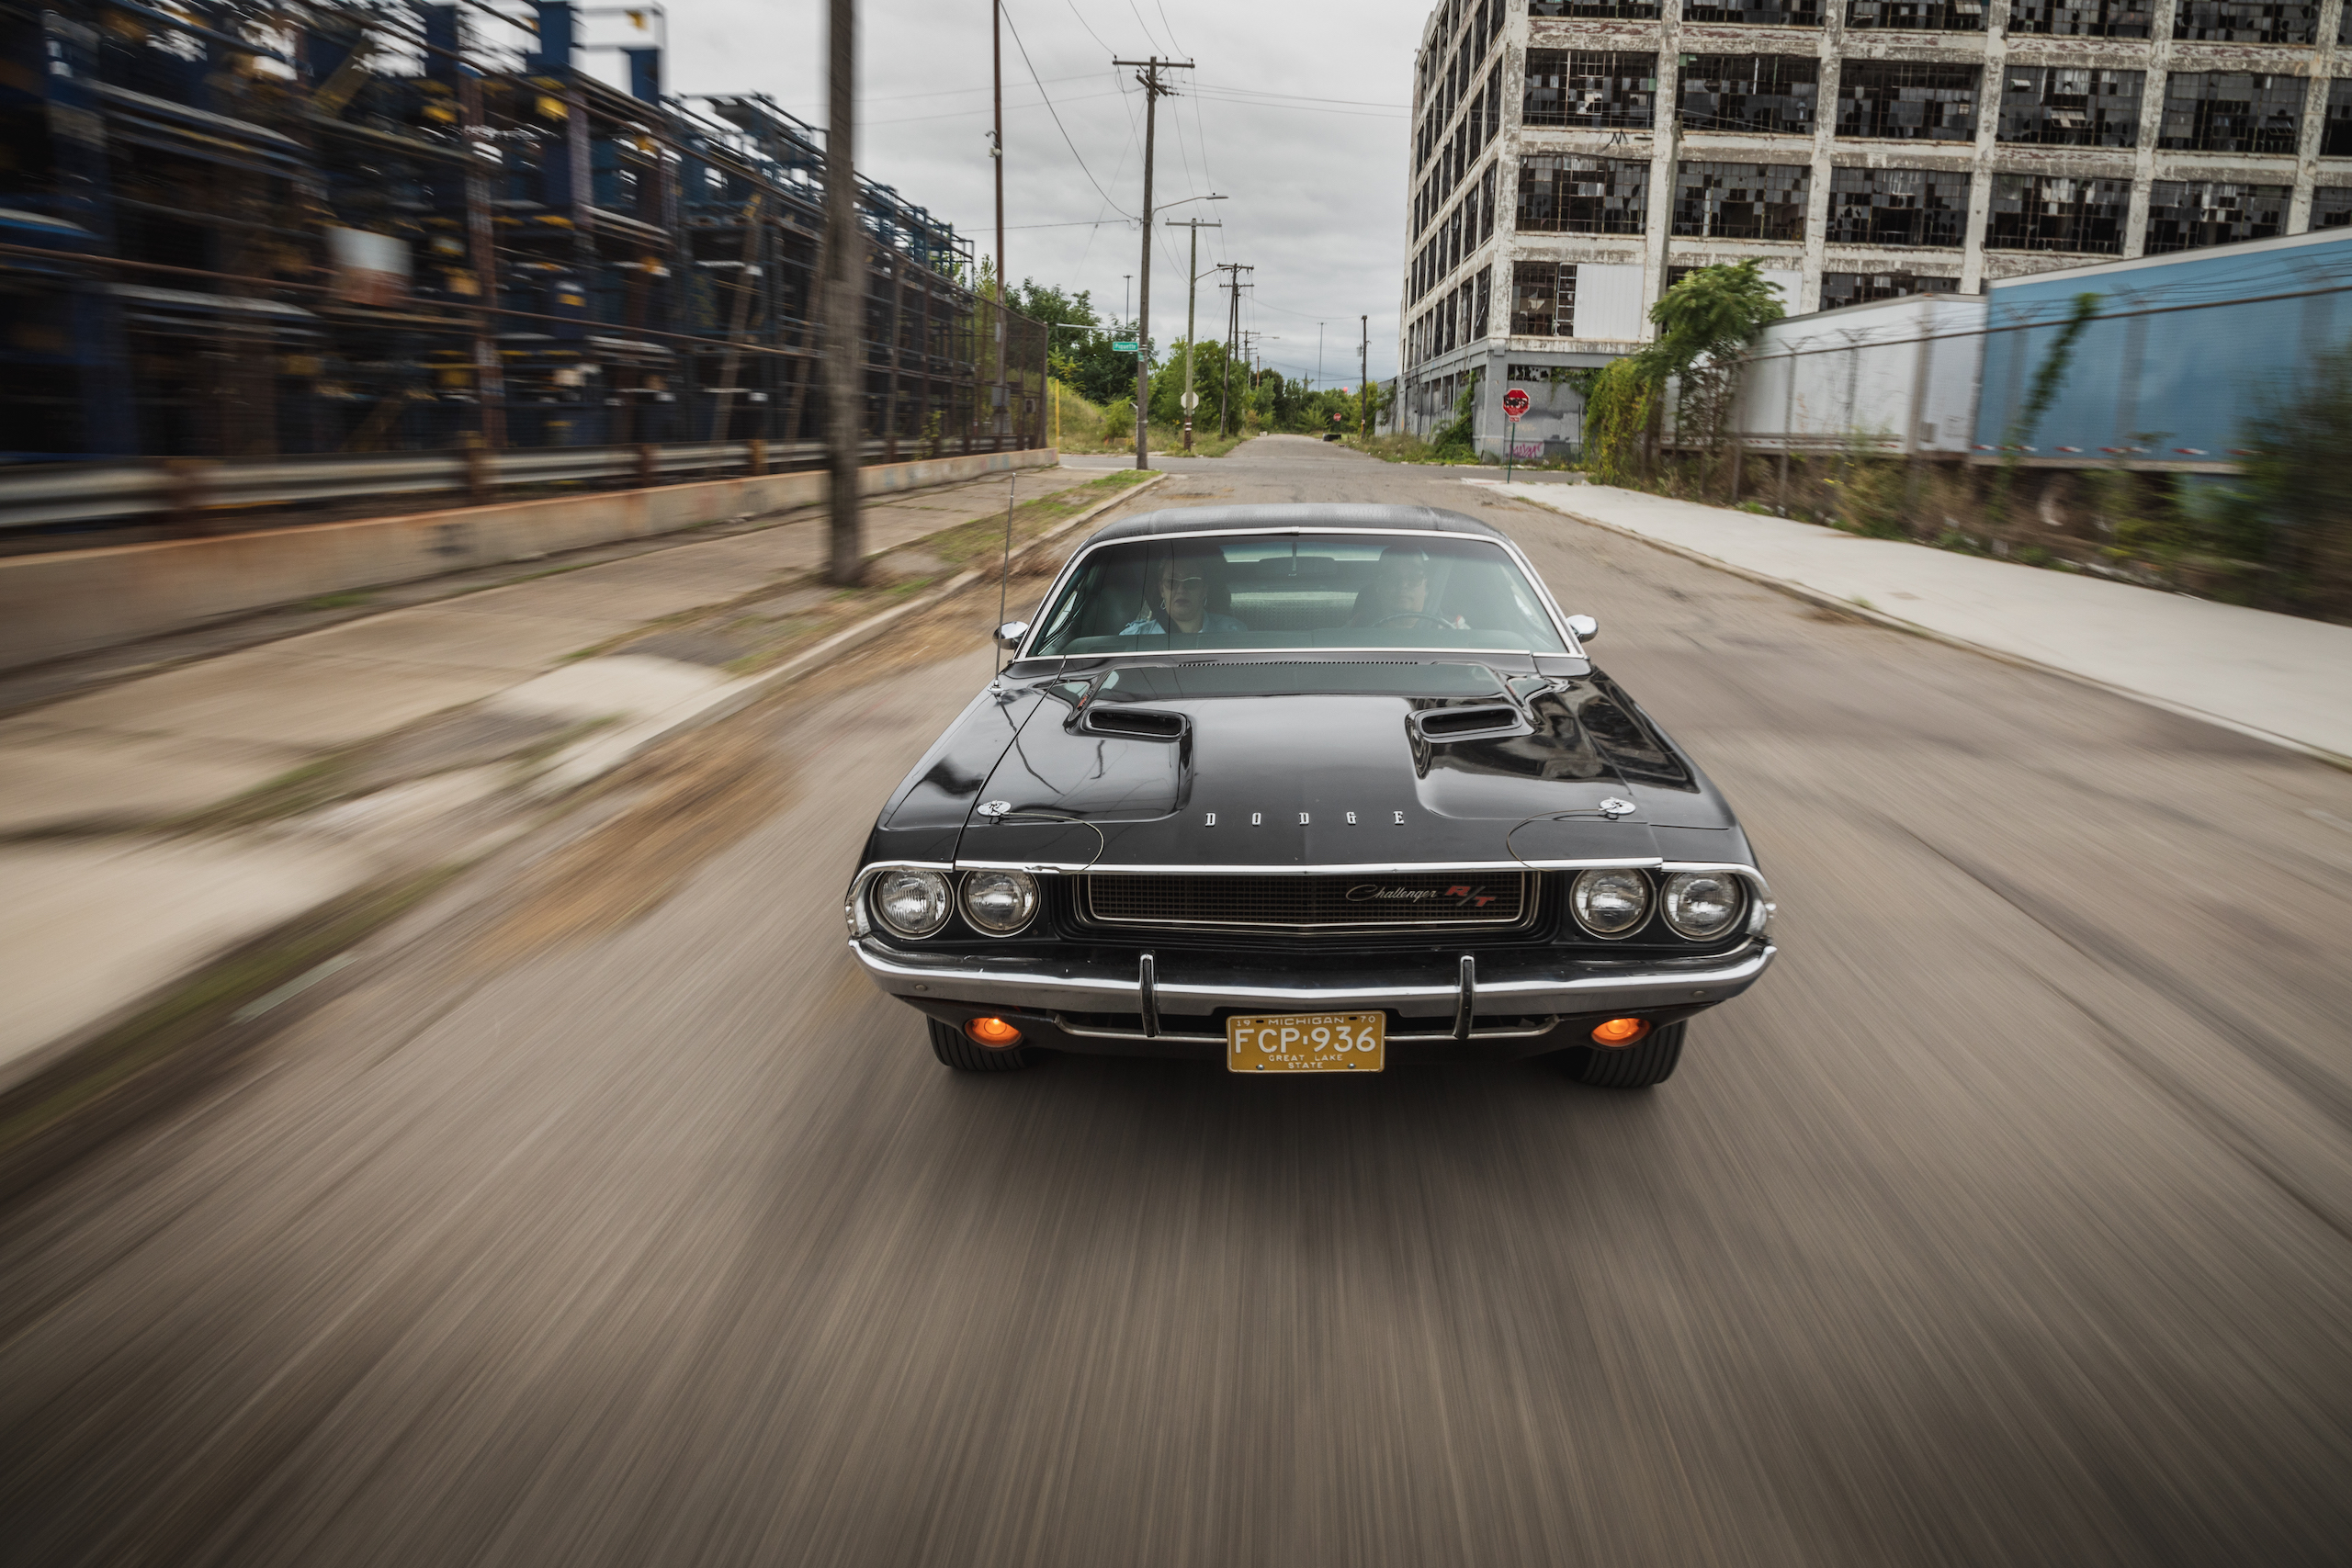 1970 Challenger front elevated dynamic action